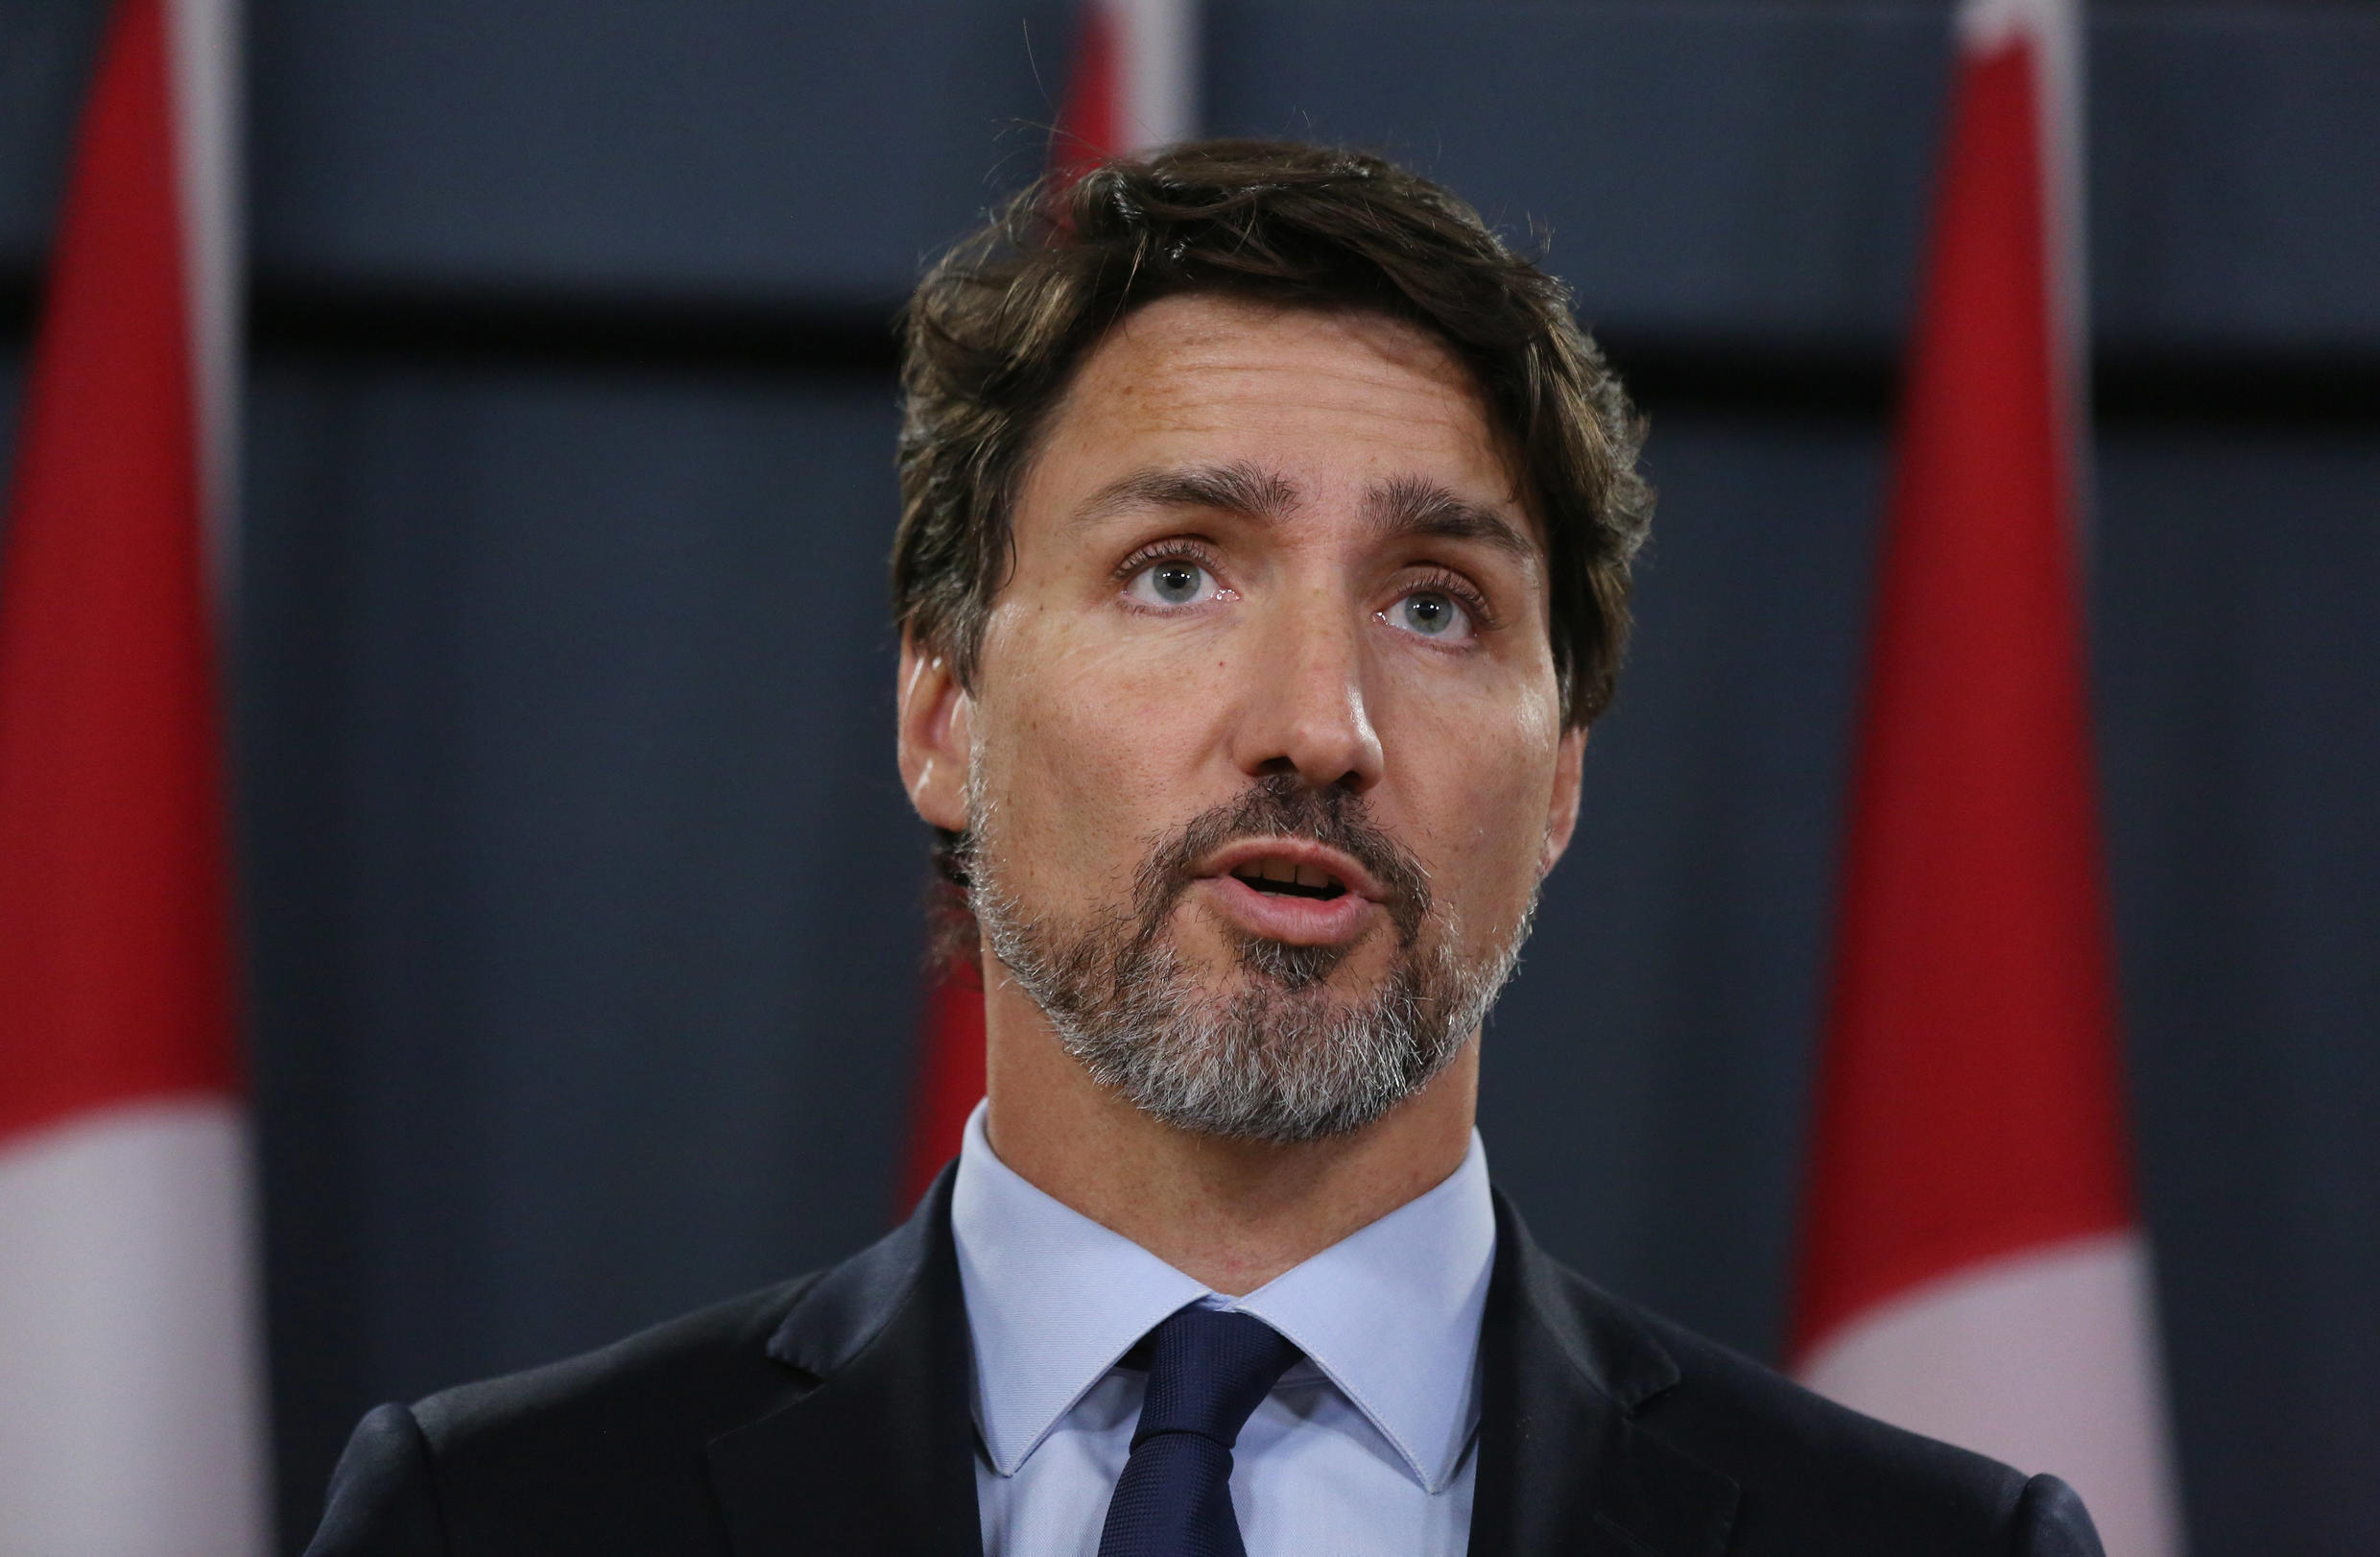 Justin Trudeau said extra funds would reinforce Canada's health systems and help those forced to undergo isolation